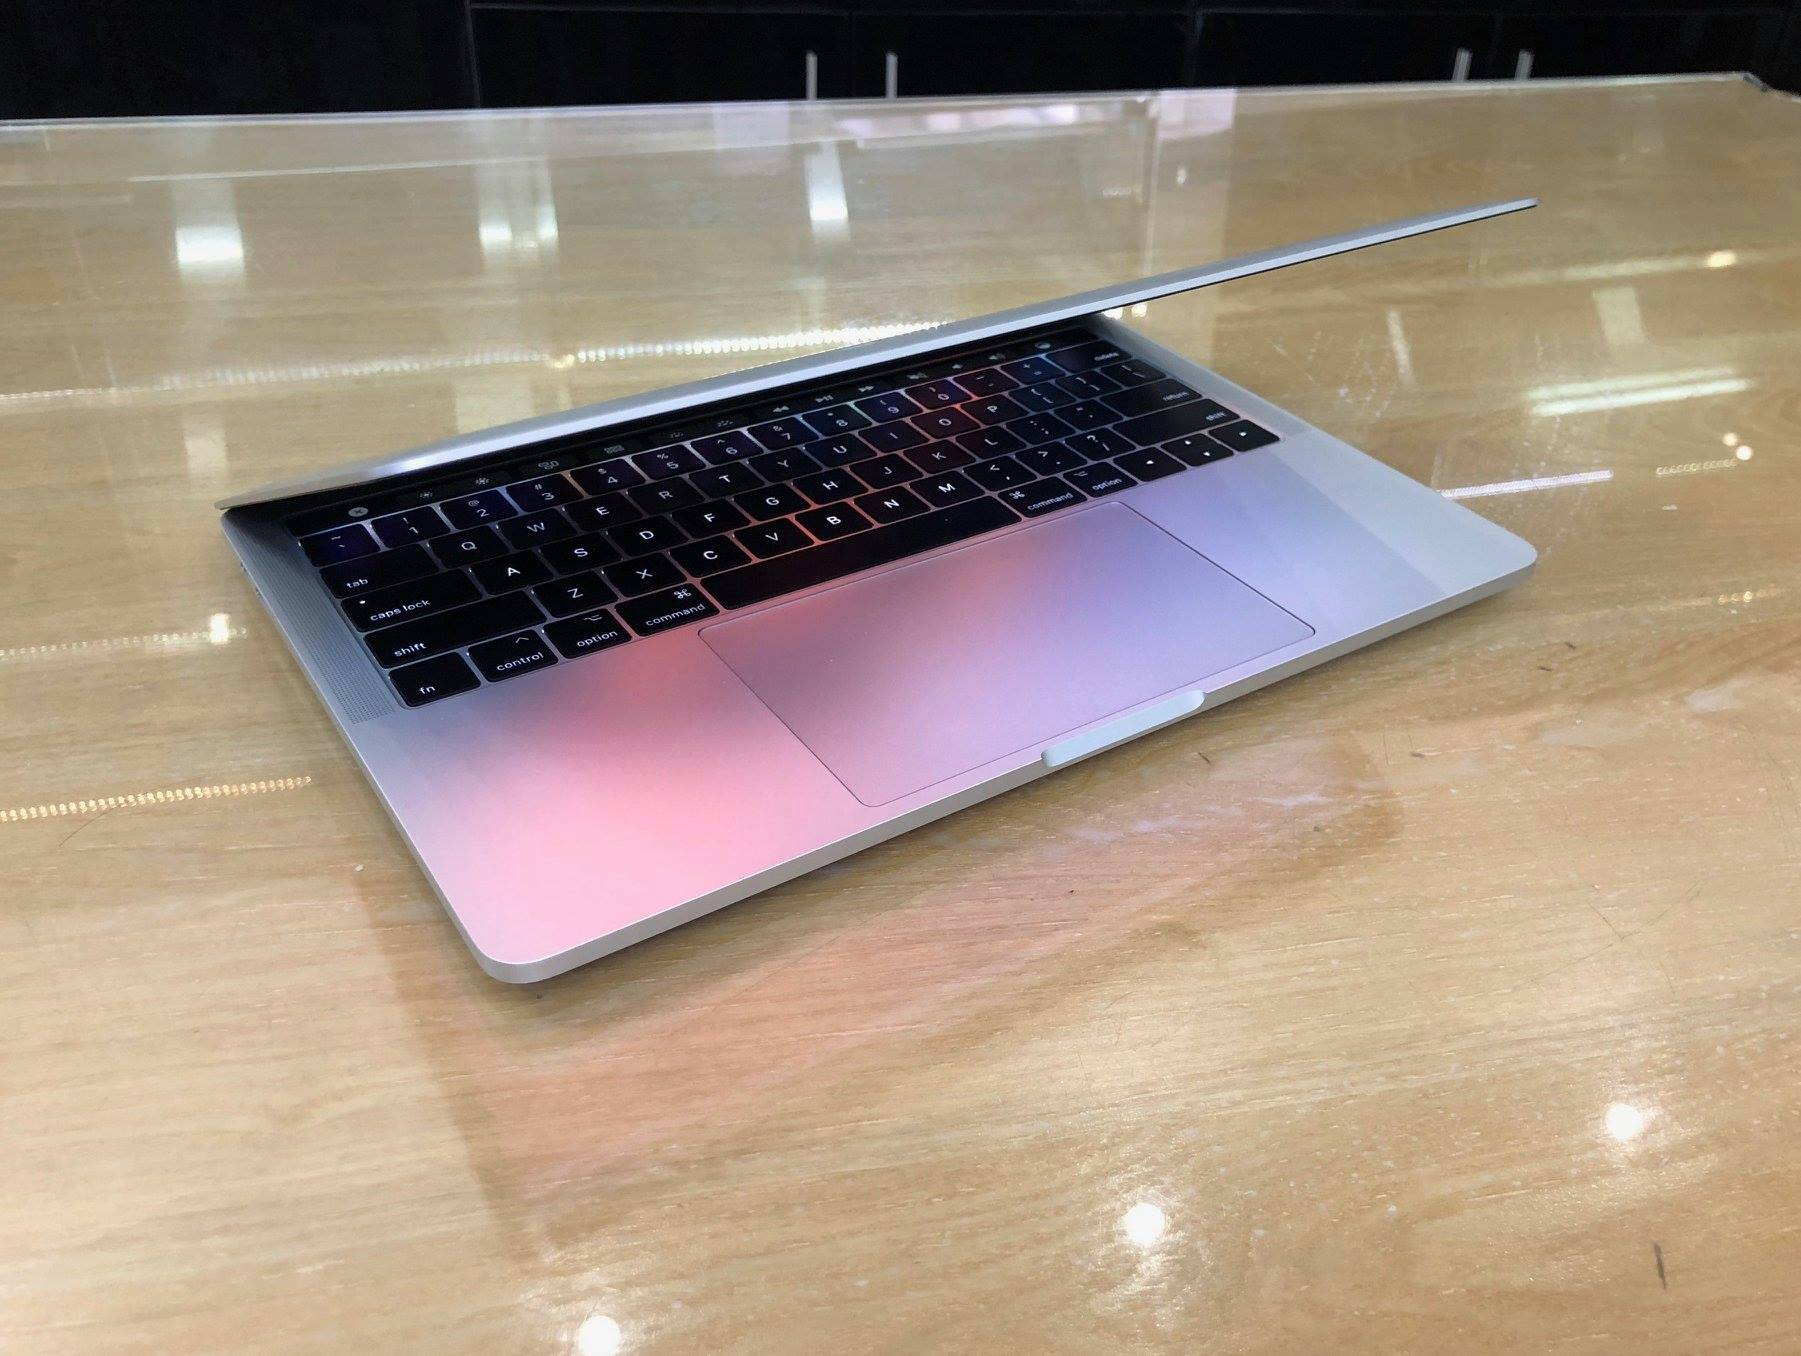 Macbook Pro Retina MLVP2 13inch 256GB Touch Bar-1.jpg